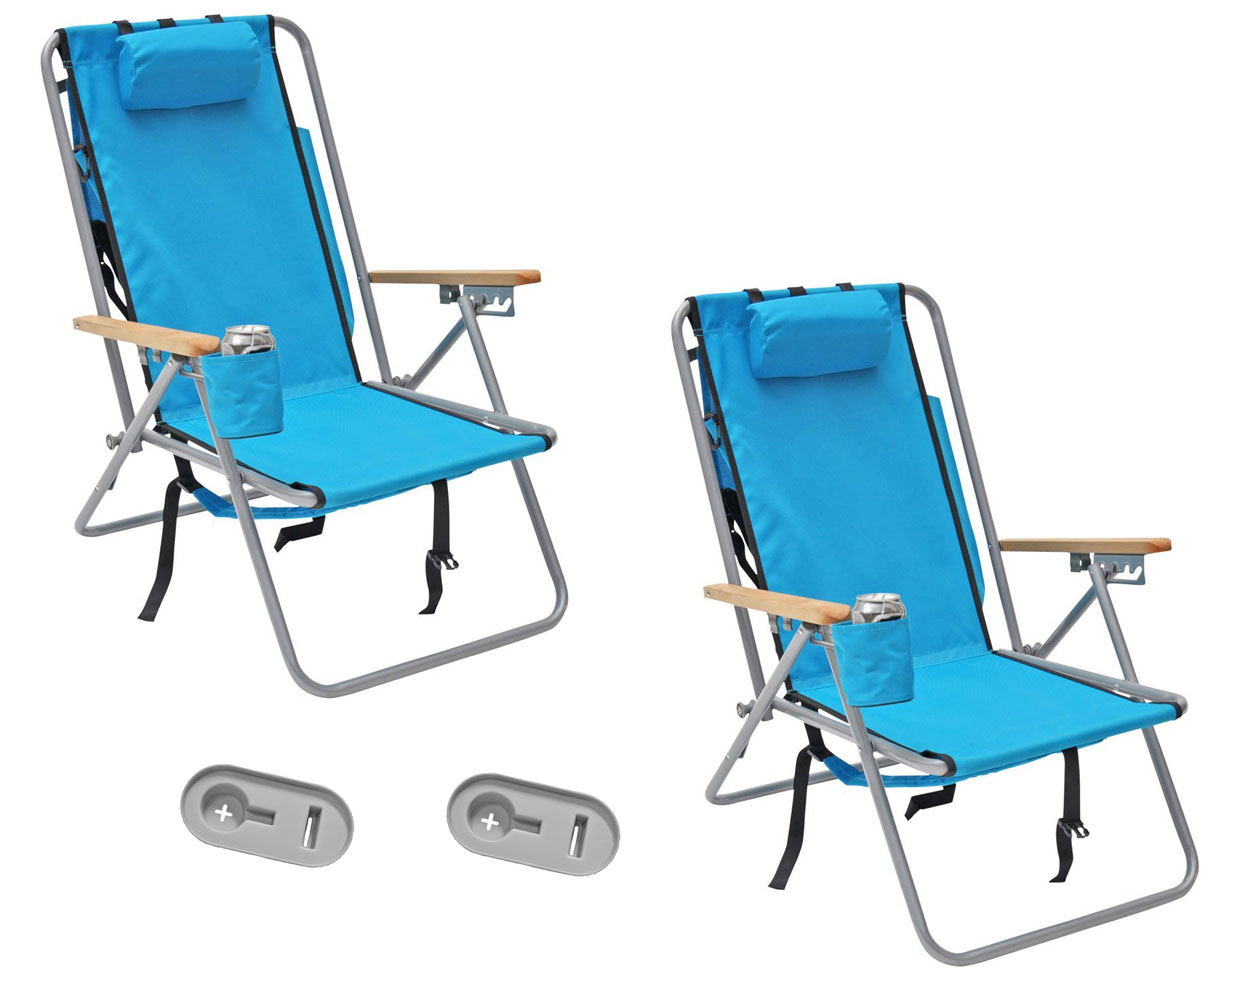 Deluxe Camping Chairs Deluxe Steel Rio Backpack Beach Camping Chair With Side